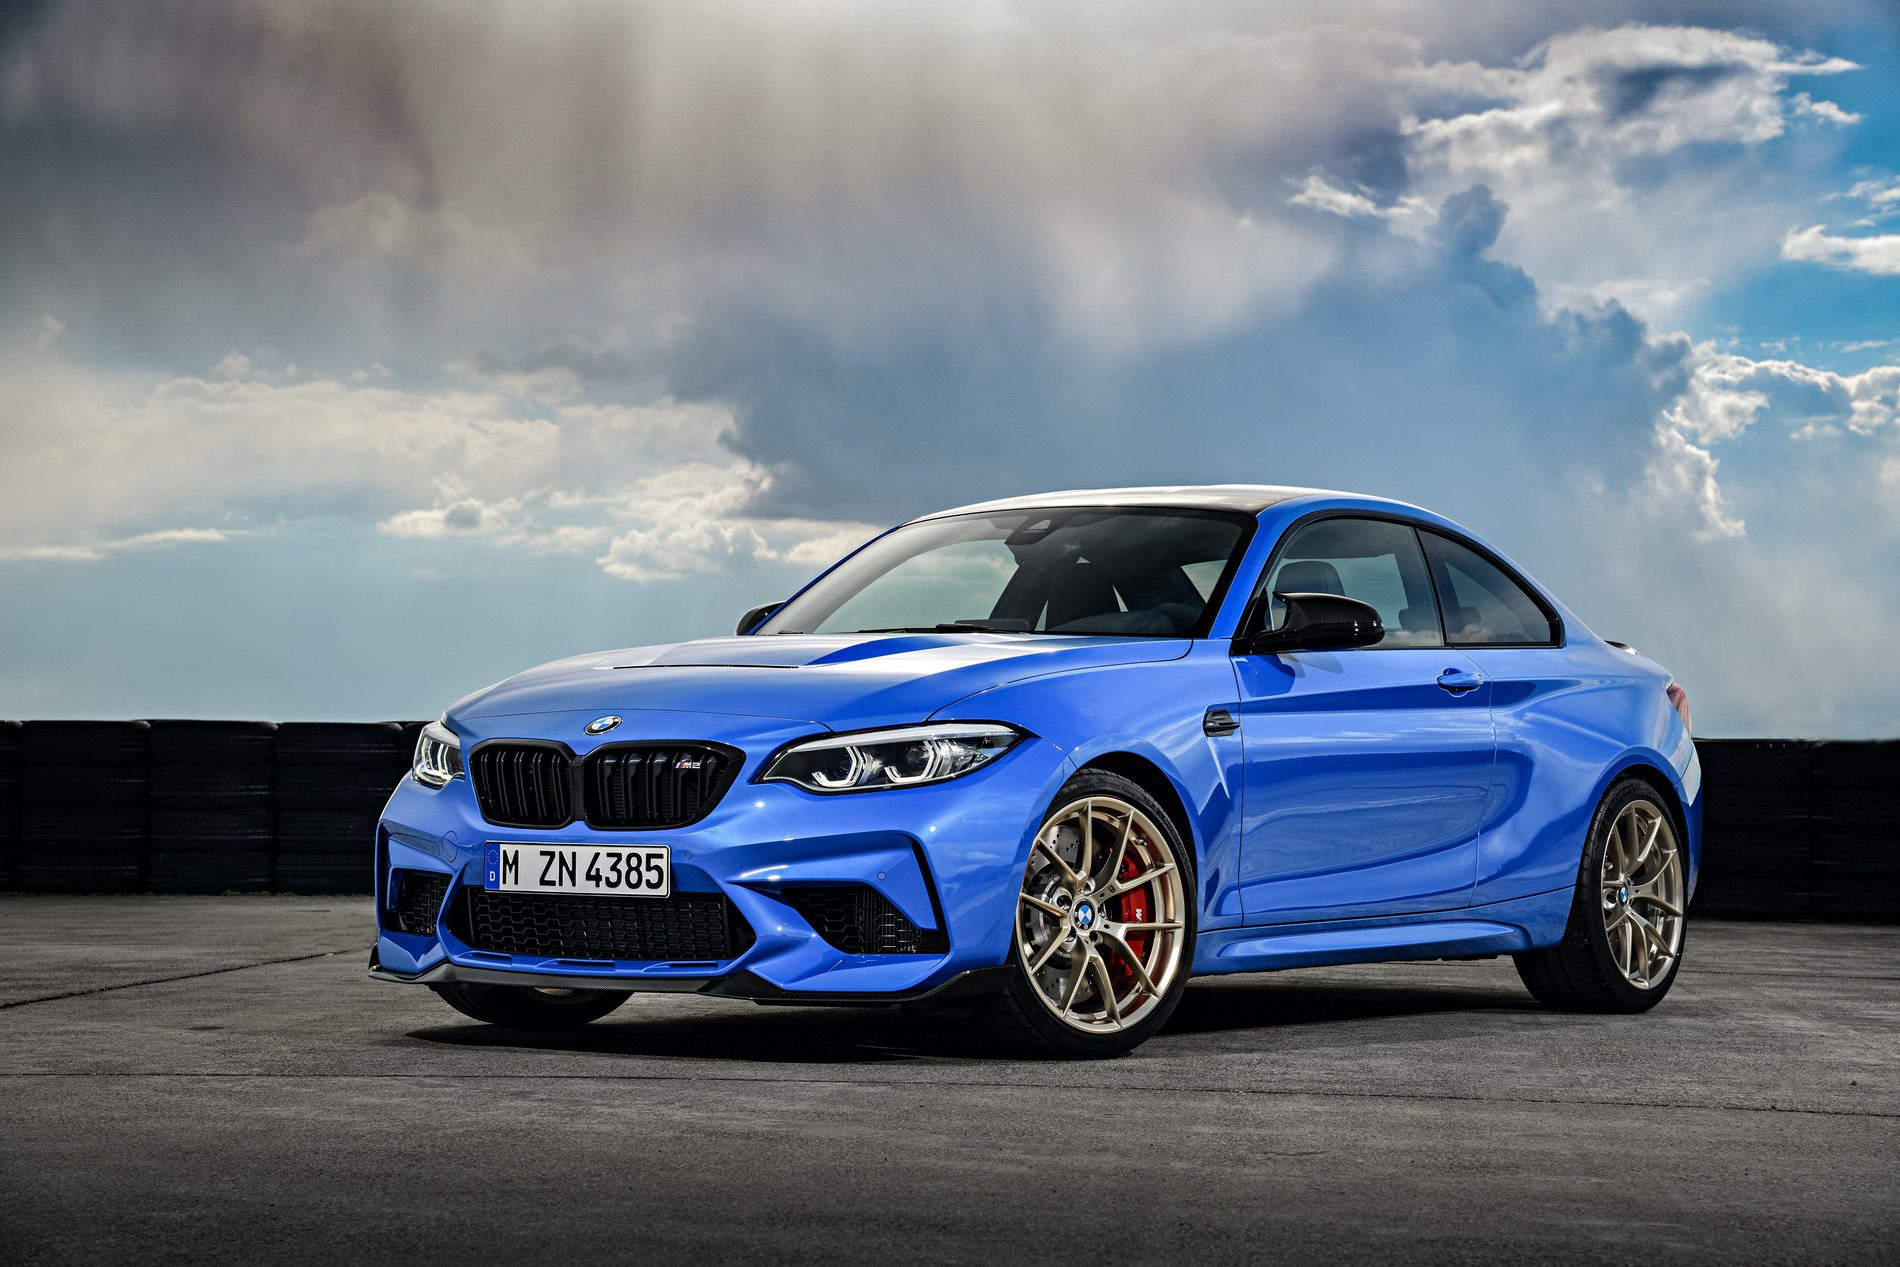 2021 BMW M2 CS Misano Blue 85